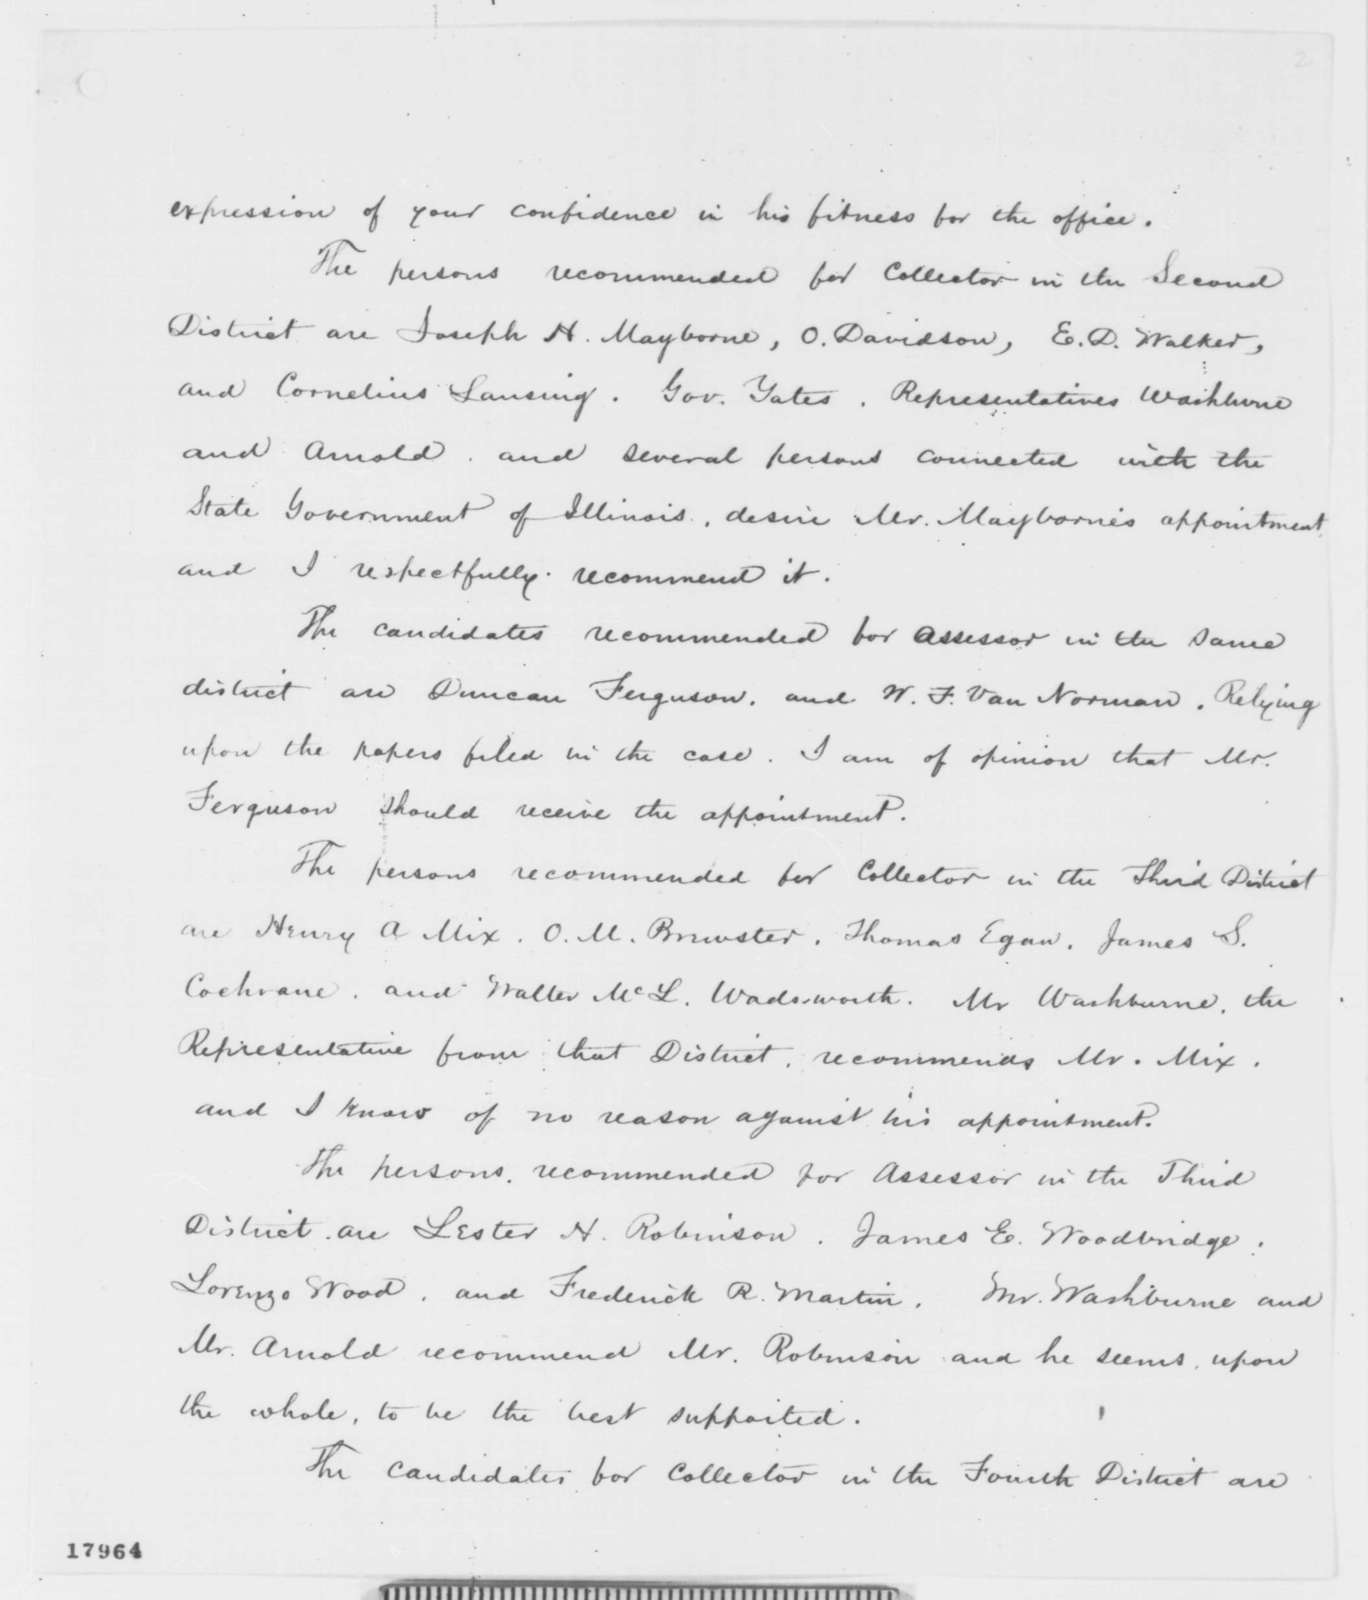 Salmon P. Chase to Abraham Lincoln, Monday, August 25, 1862  (Illinois appointments)